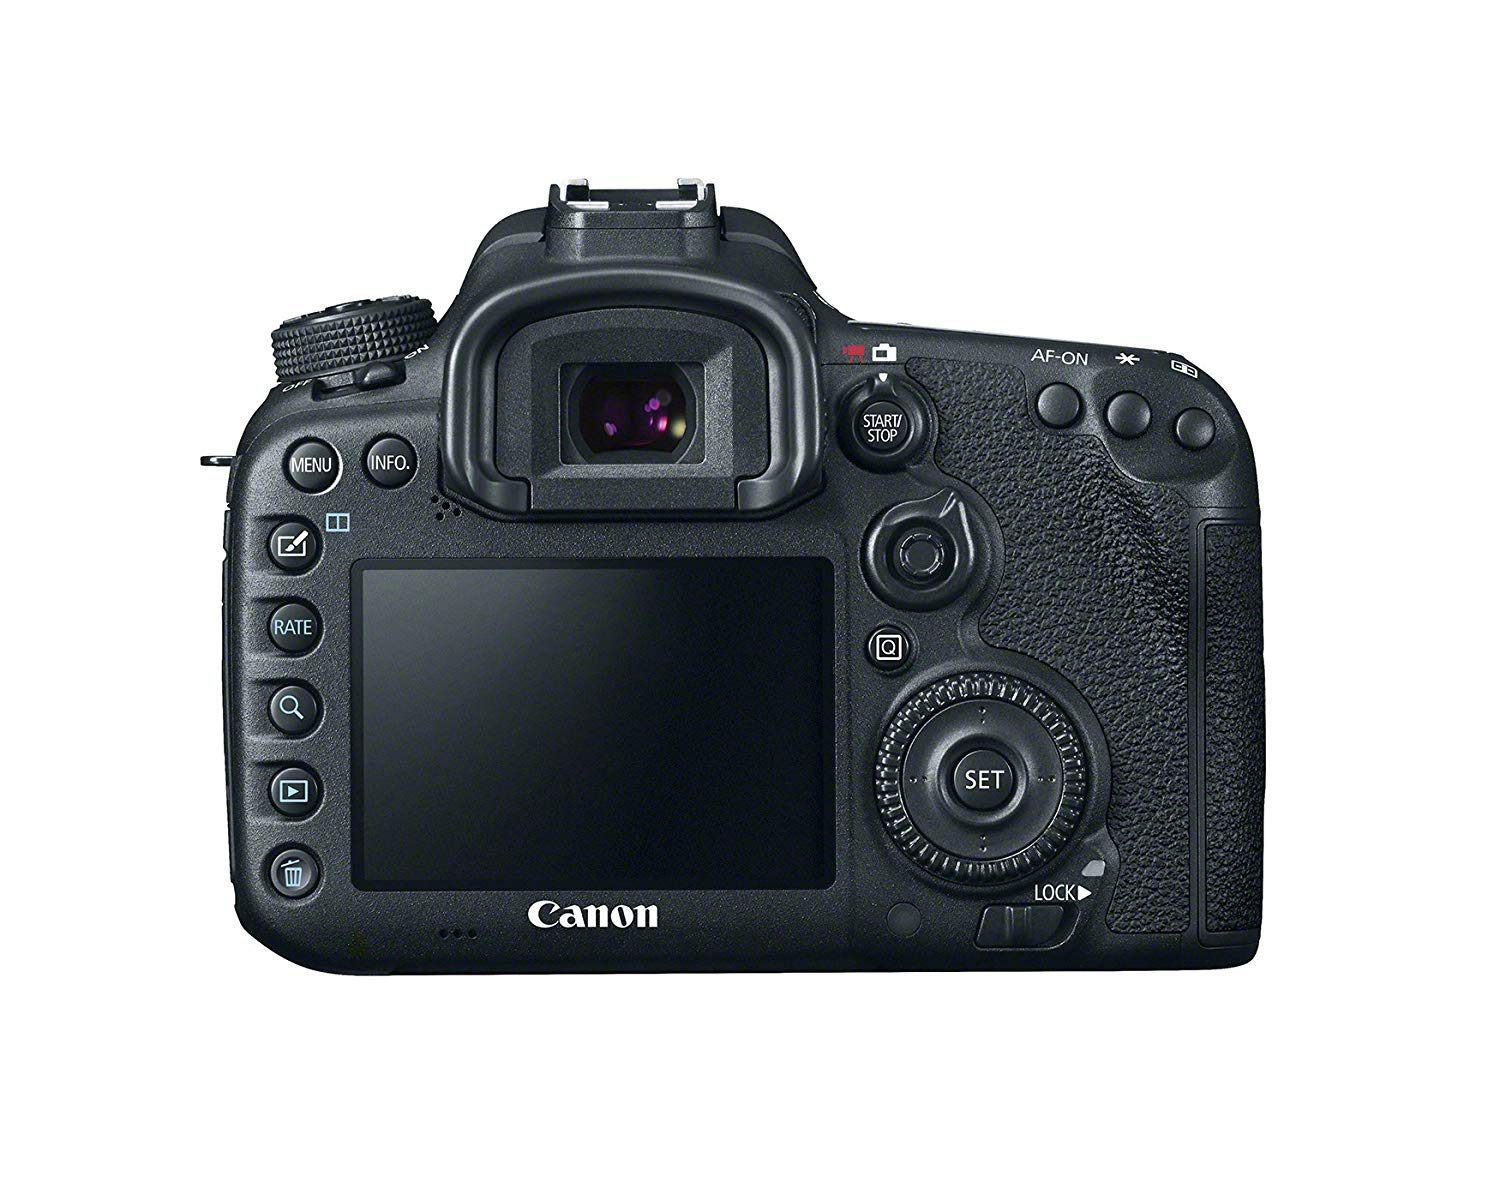 CANON 7D MARK II back image